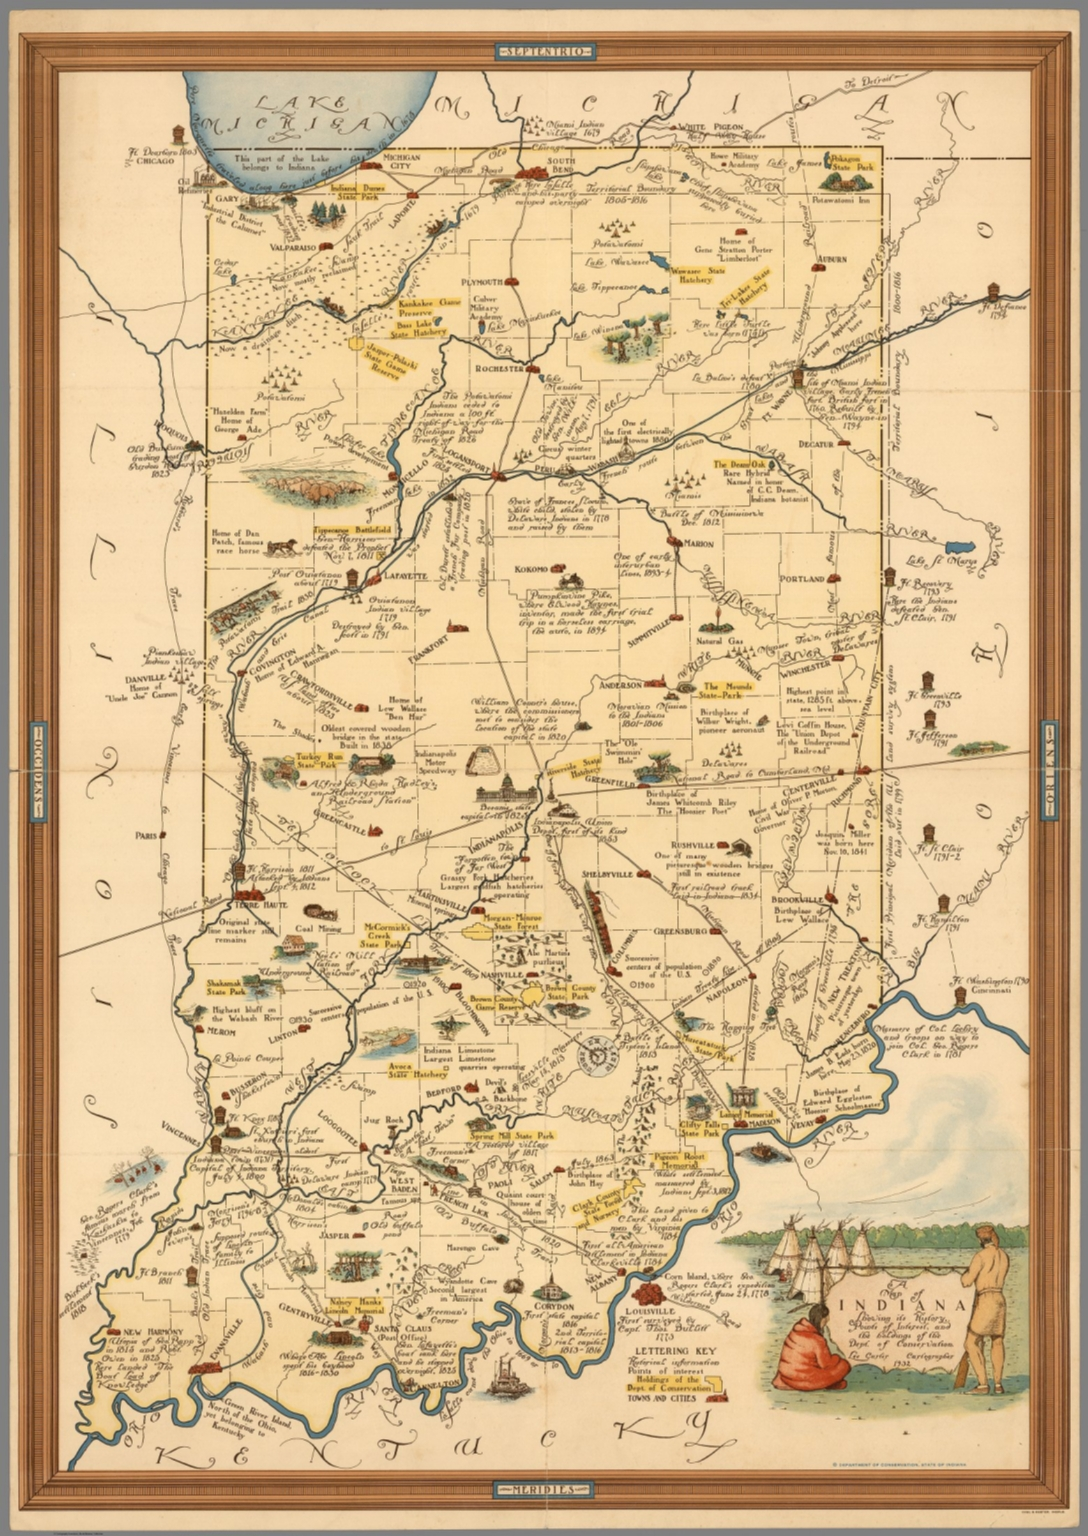 A Map of Indiana Showing its History, Points of Interest, and the ...